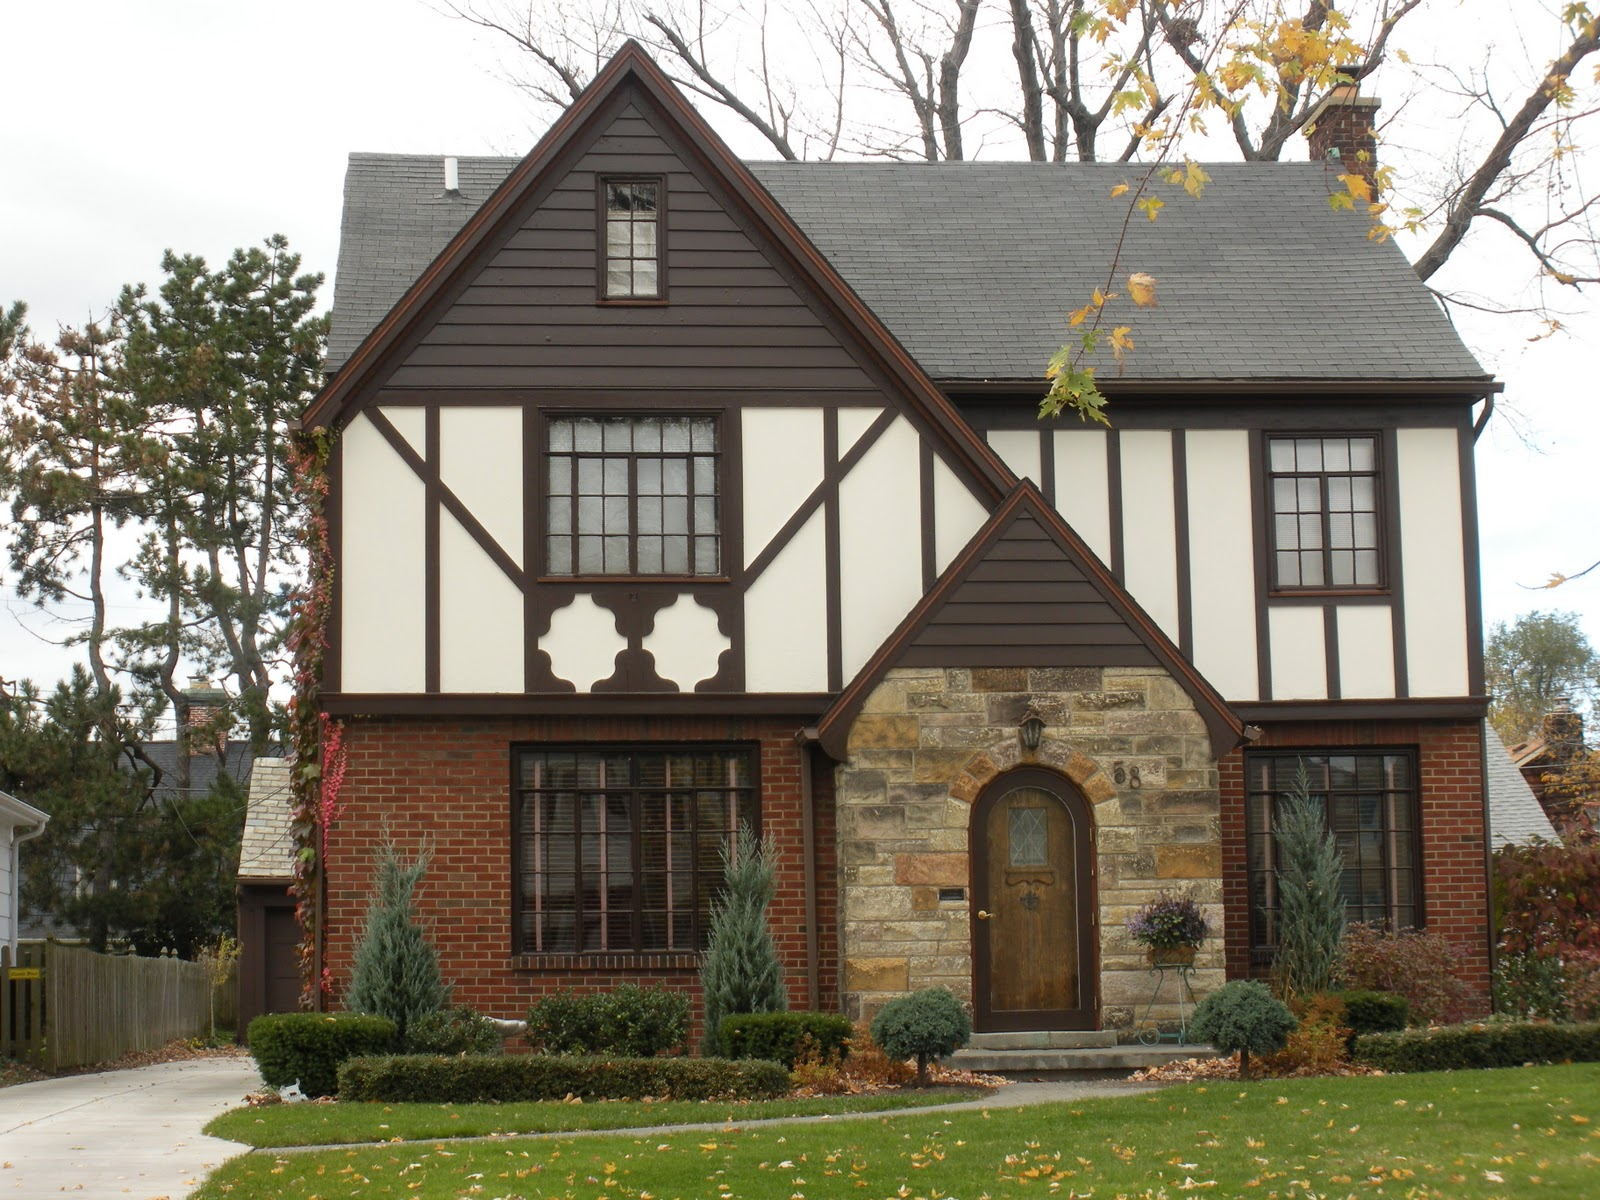 Reinventing the past housing styles of tudor ville and for Different types of houses